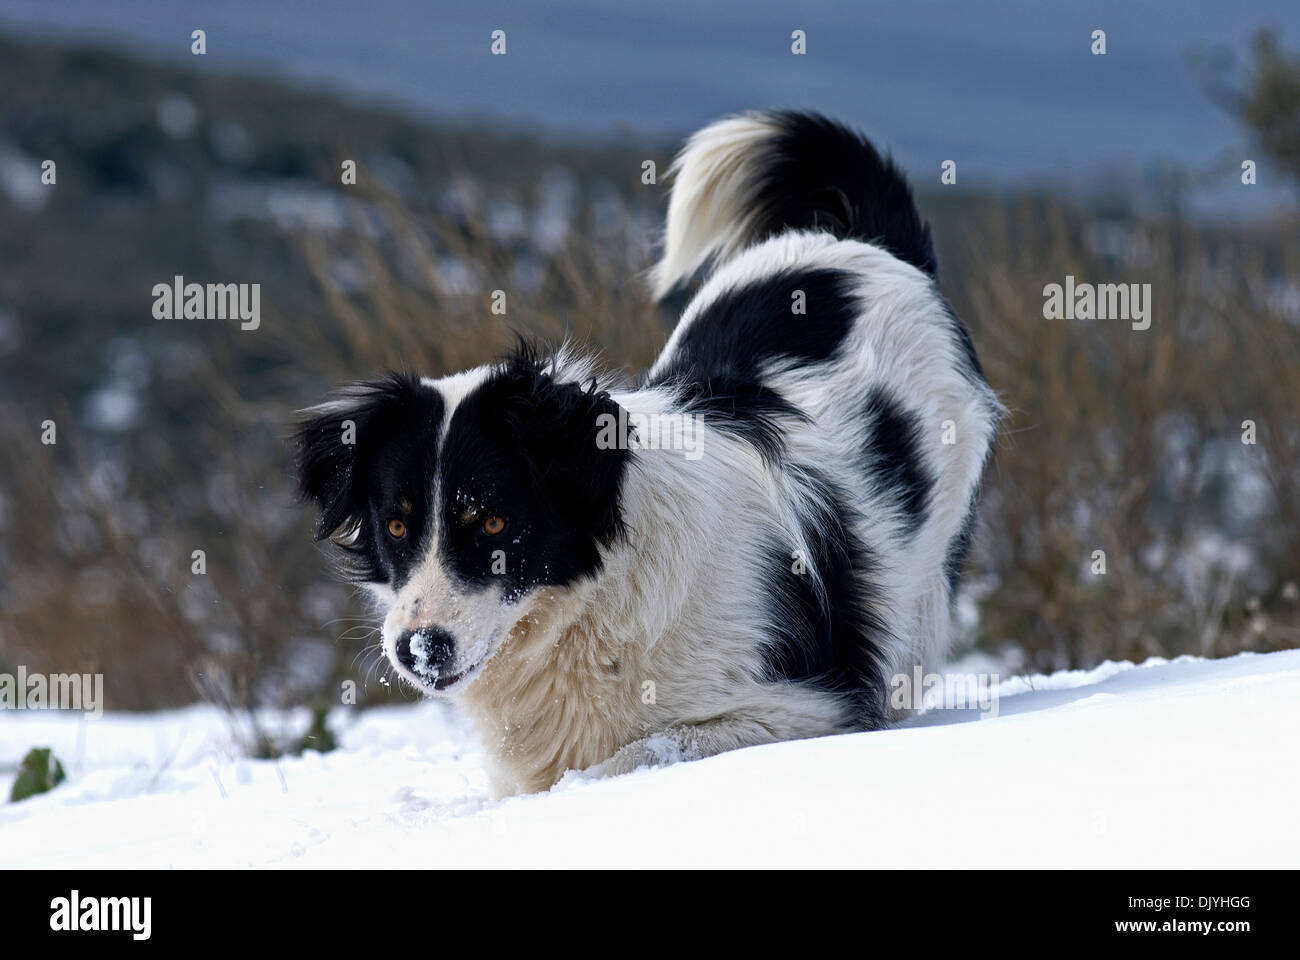 Young Border Collie playing and digging in snow - Stock Image